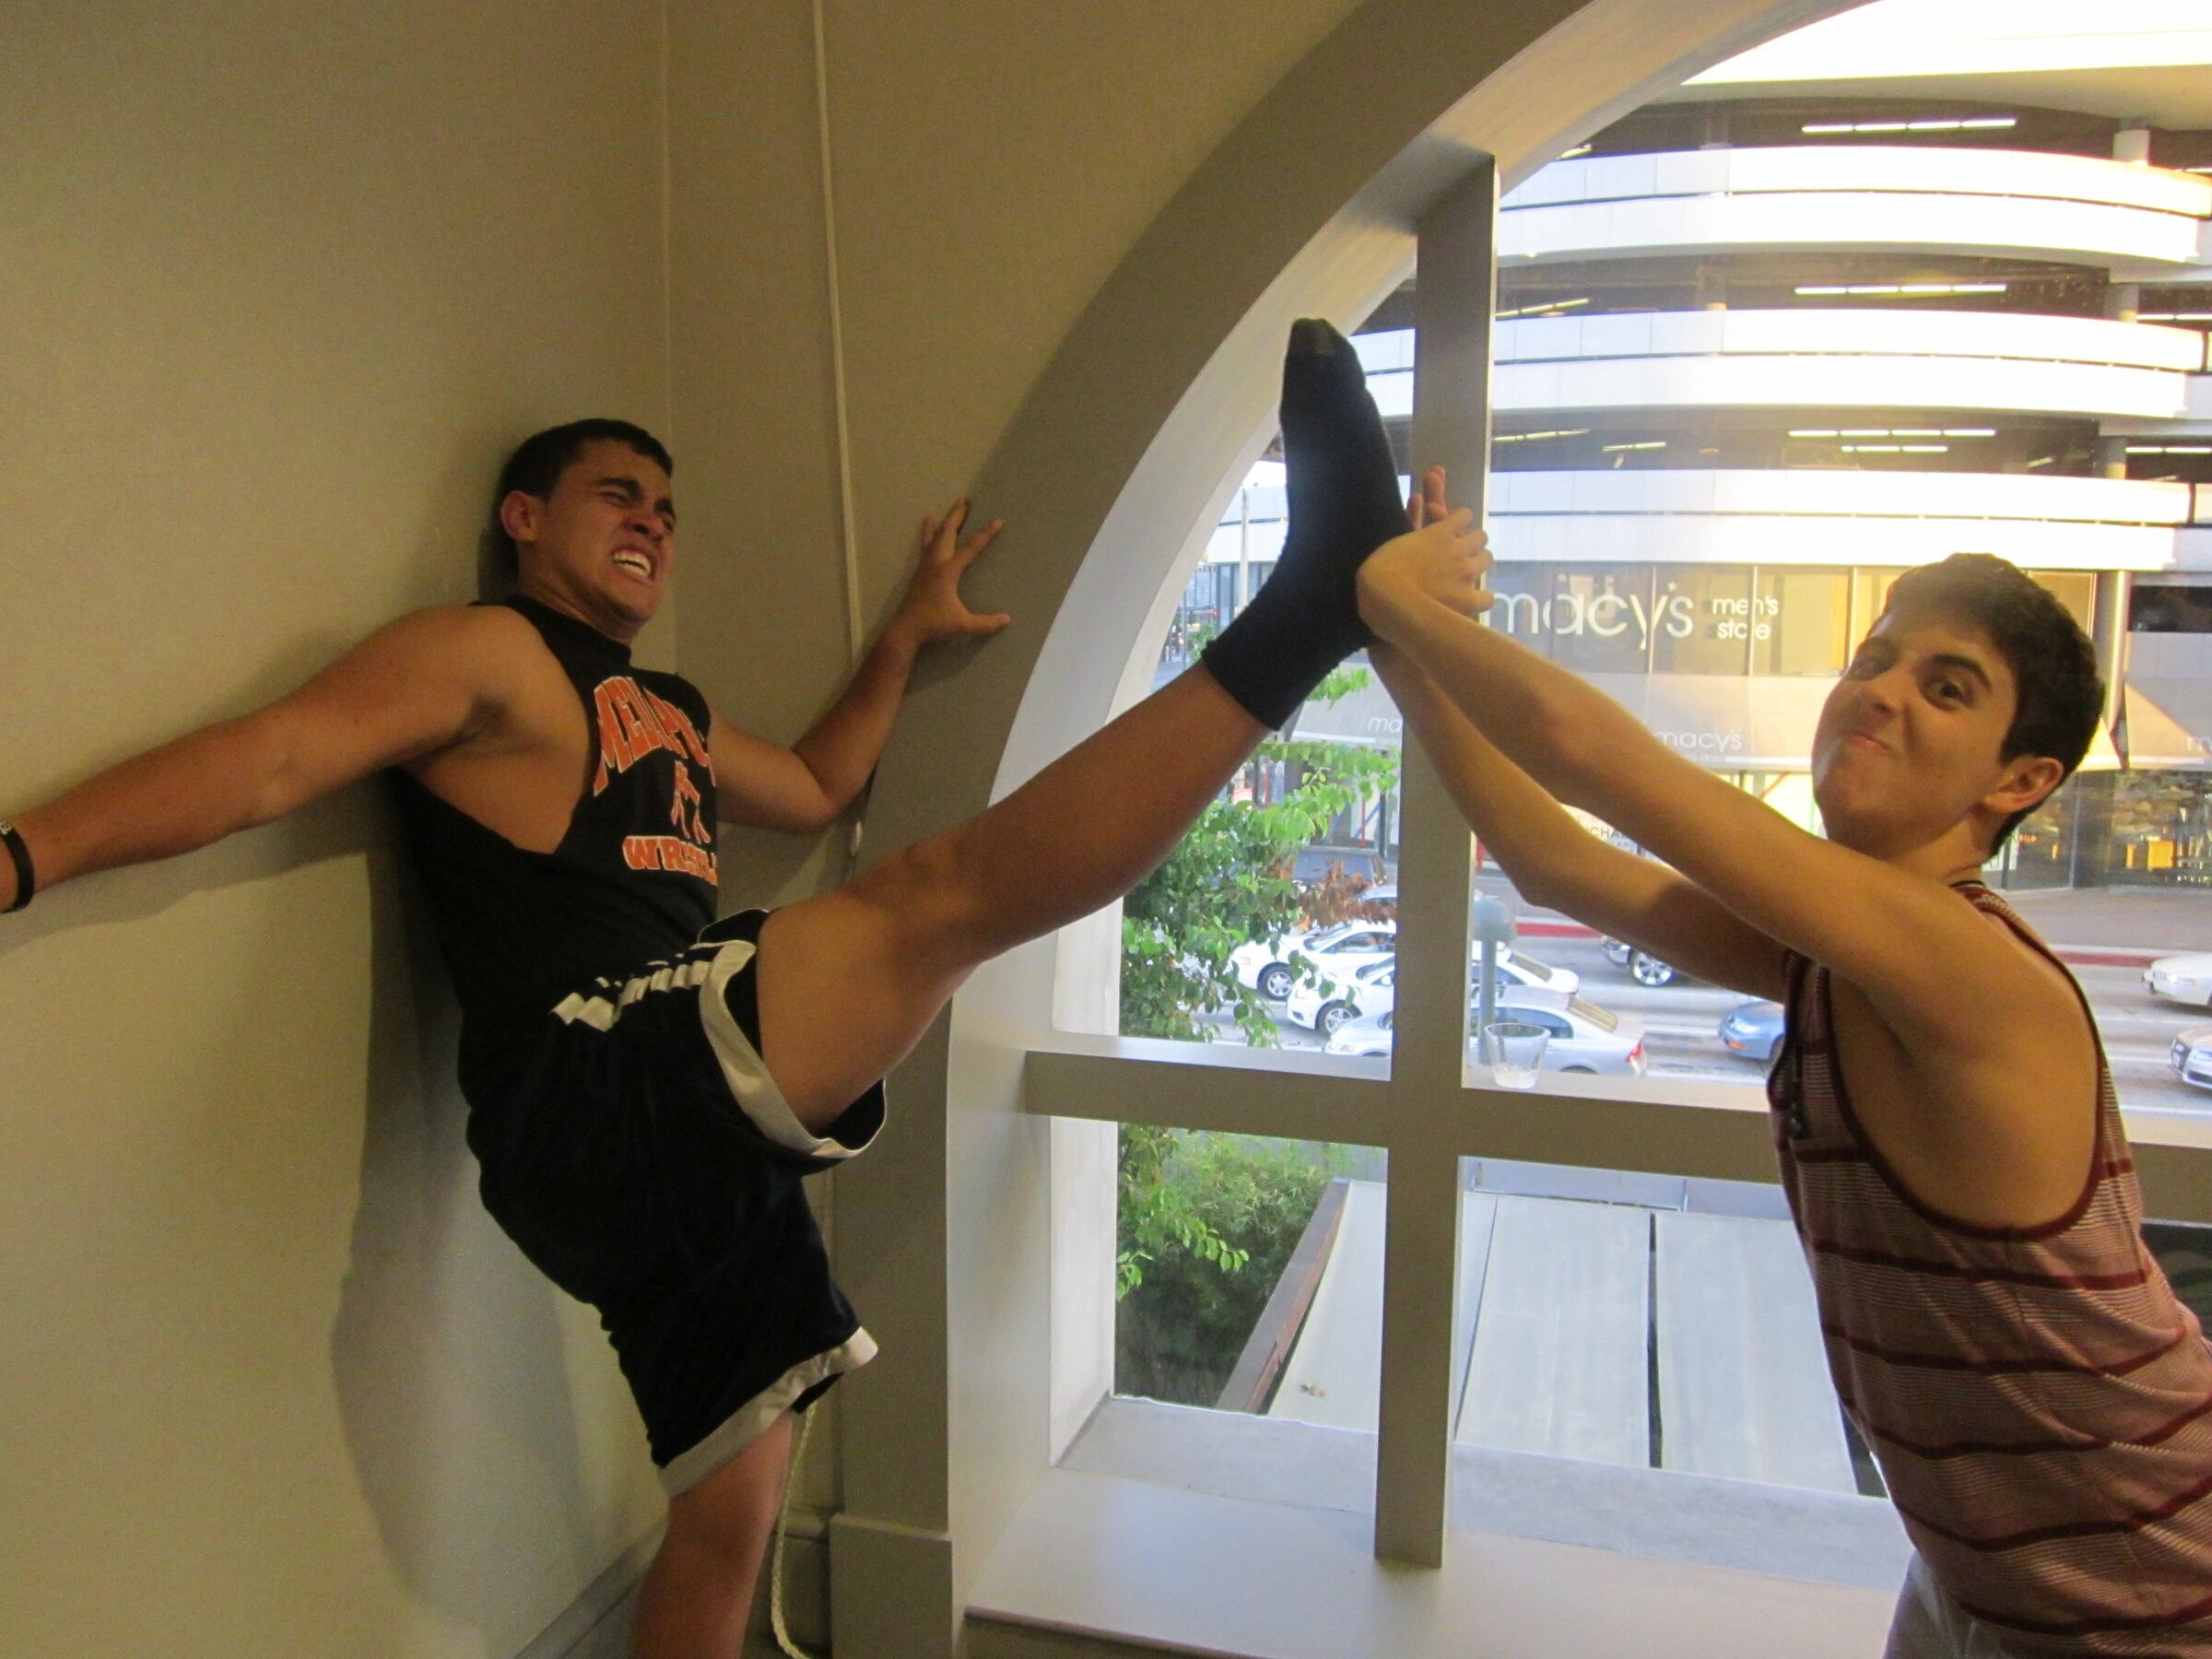 We're tryin to be as flexible as the girls but it doesnt look like its gonna happen